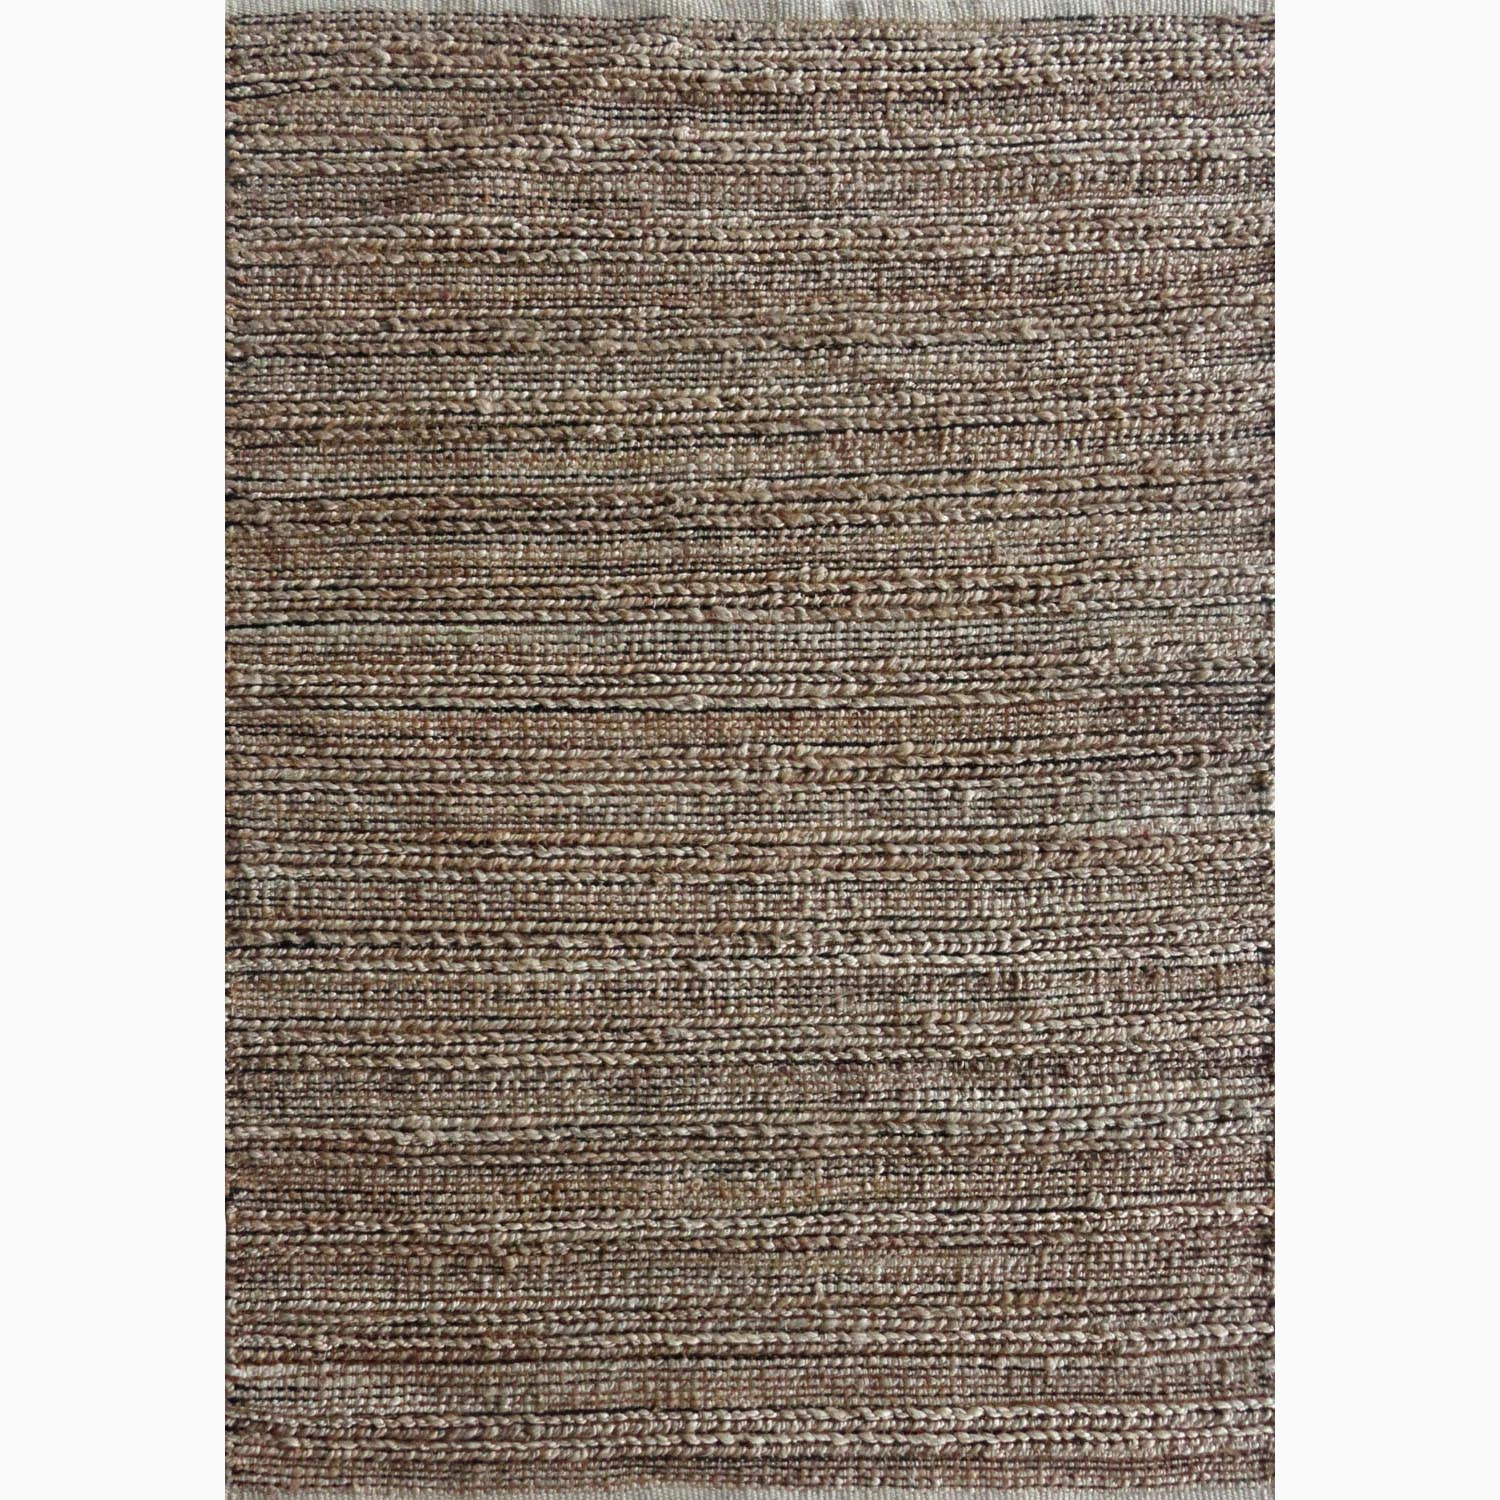 Handmade Solid Pattern Taupe/ Gray Cotton/ Jute Rug (2'6 x 4)